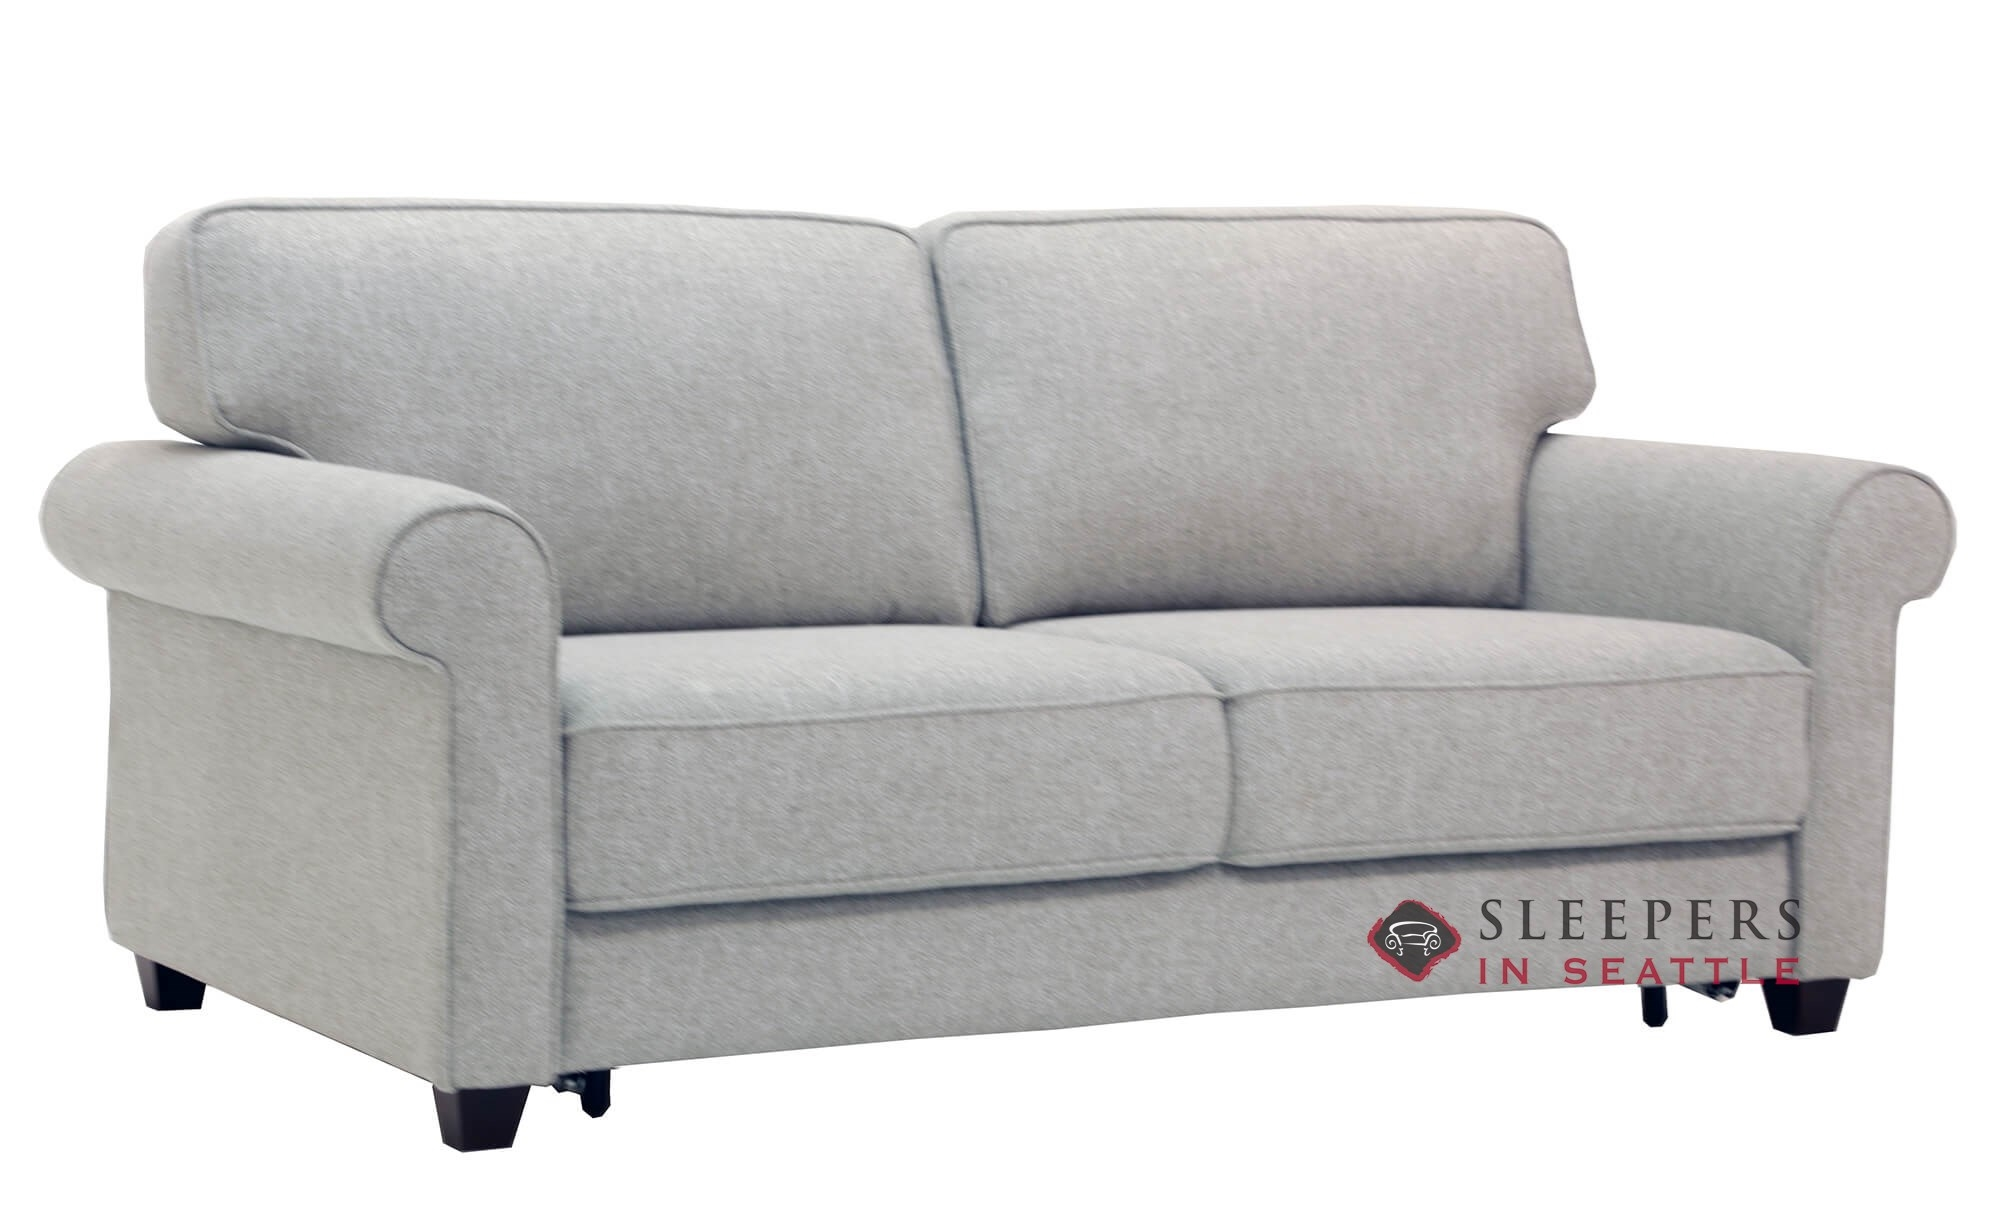 Queen Sofa Bed Quick Ship Casey By Luonto Queen Fabric Sofa By Luonto Fast Shipping Casey By Luonto Queen Sofa Bed Sleepersinseattle